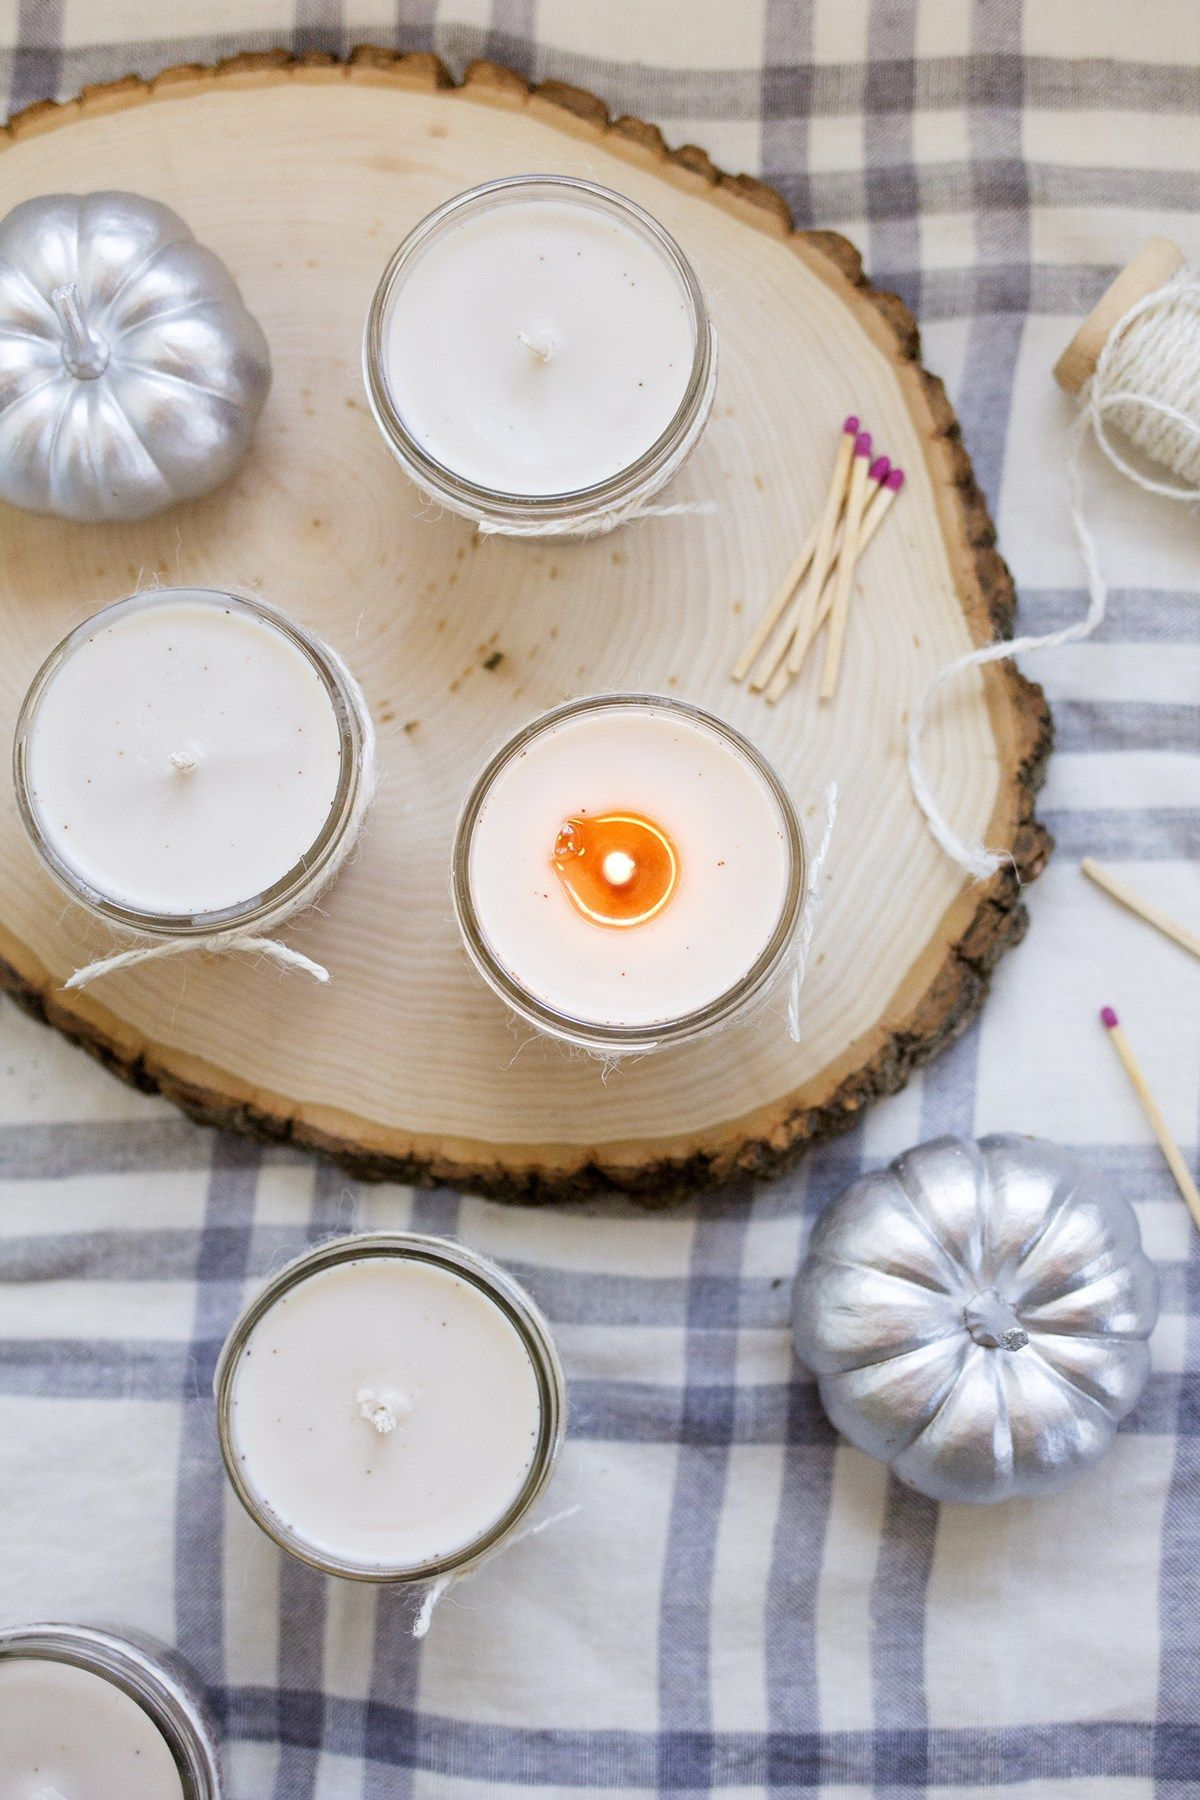 10 Charming Fall Decoration Ideas from Expert Crafters